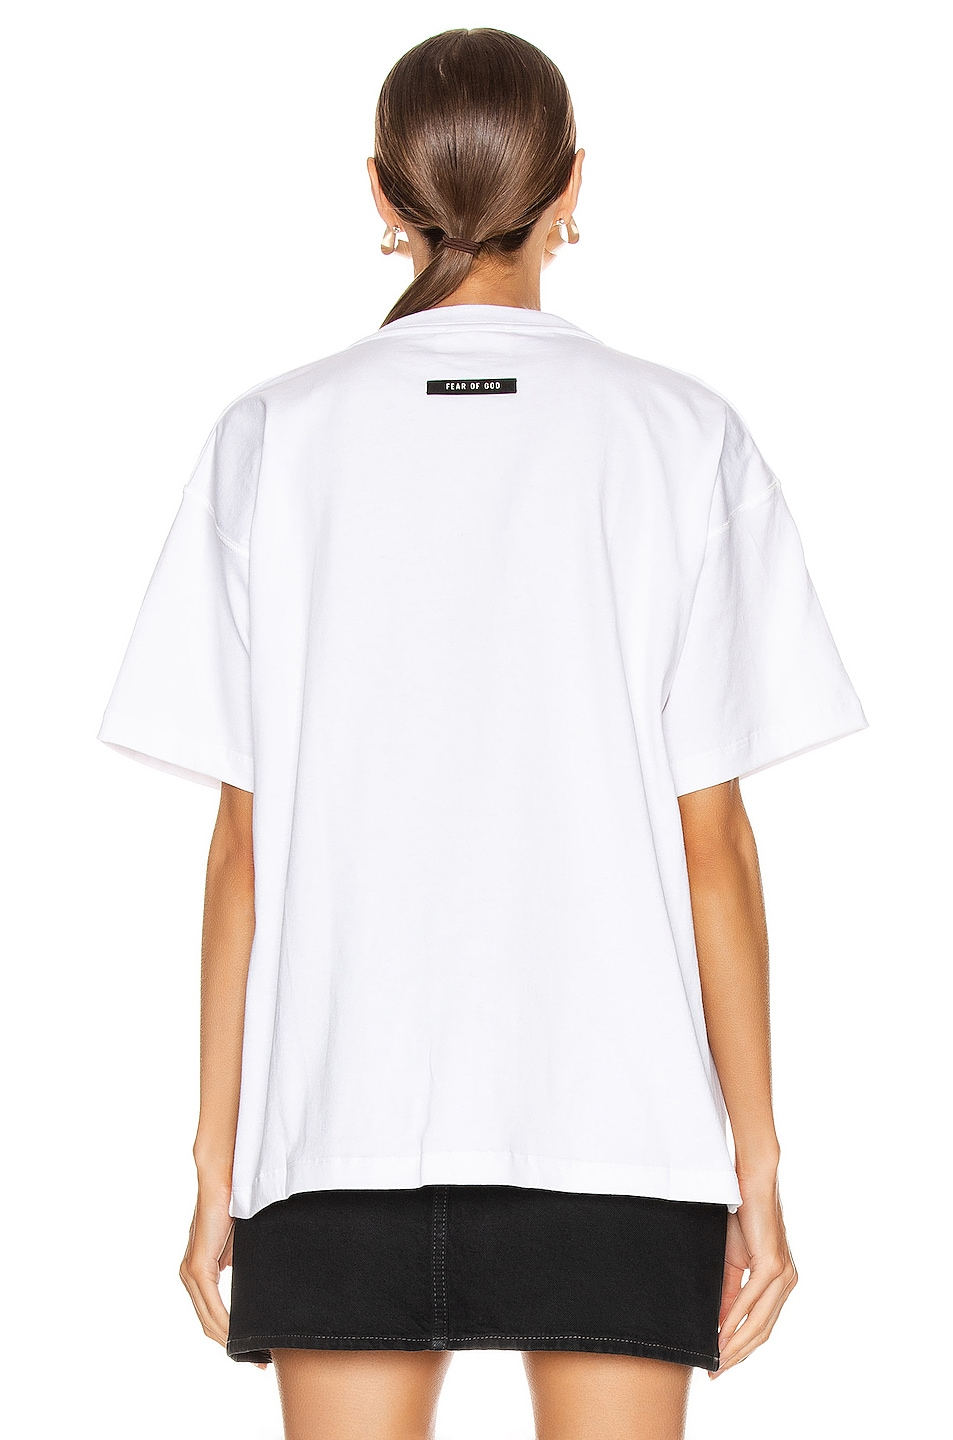 Image 3 of Fear of God Short Sleeve FG Tee in White